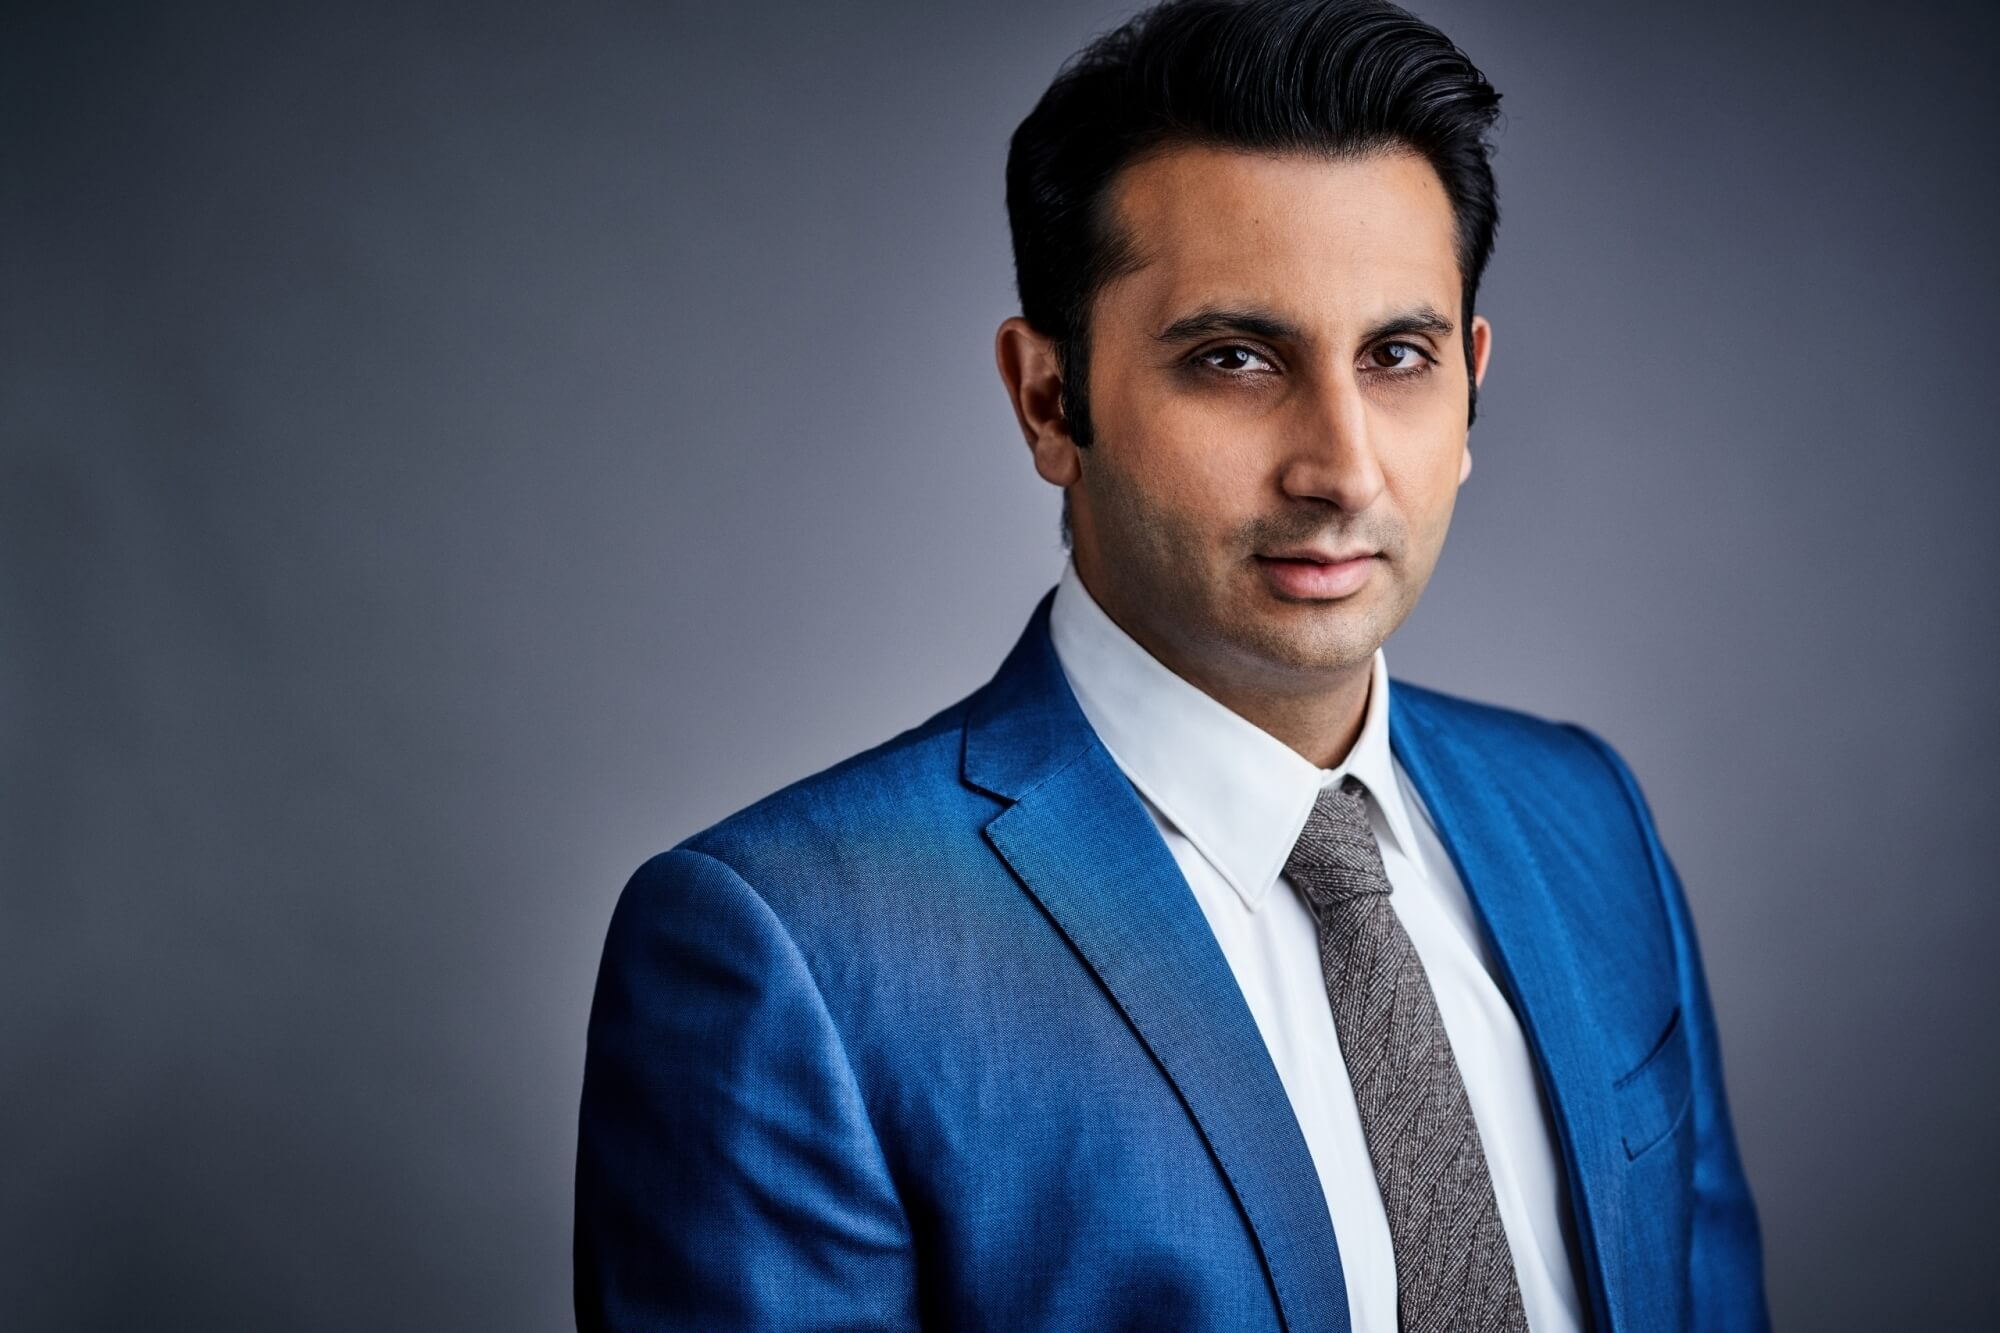 I believe Covishield will reach masses by first quarter of next year: Adar Poonawalla